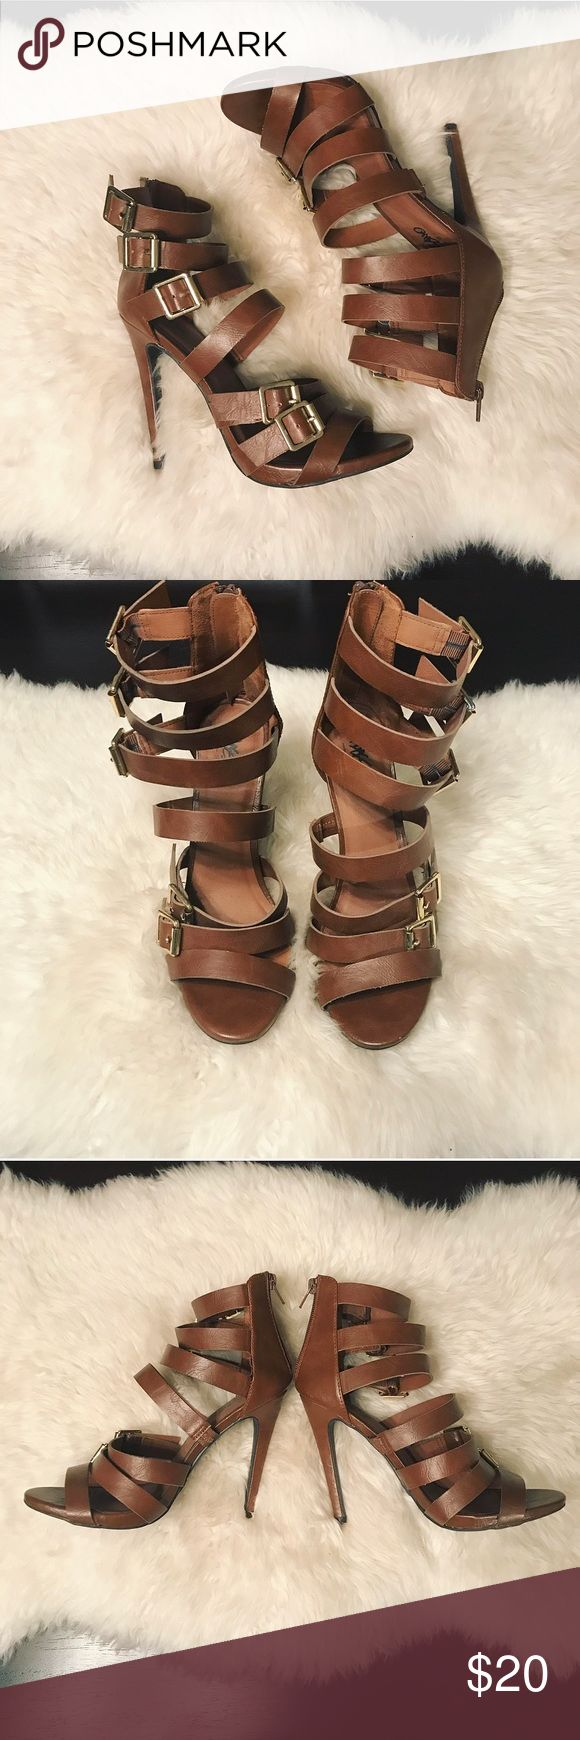 Mossimo Strappy High Heels Gorgeous light brown strappy high heel sandals with buckle detail! The buckle hardware is gold and all five buckles are functioning and adjustable! These were only worn once and they are in perfect condition! Heel height is 5 inches. Mossimo Supply Co Shoes Heels